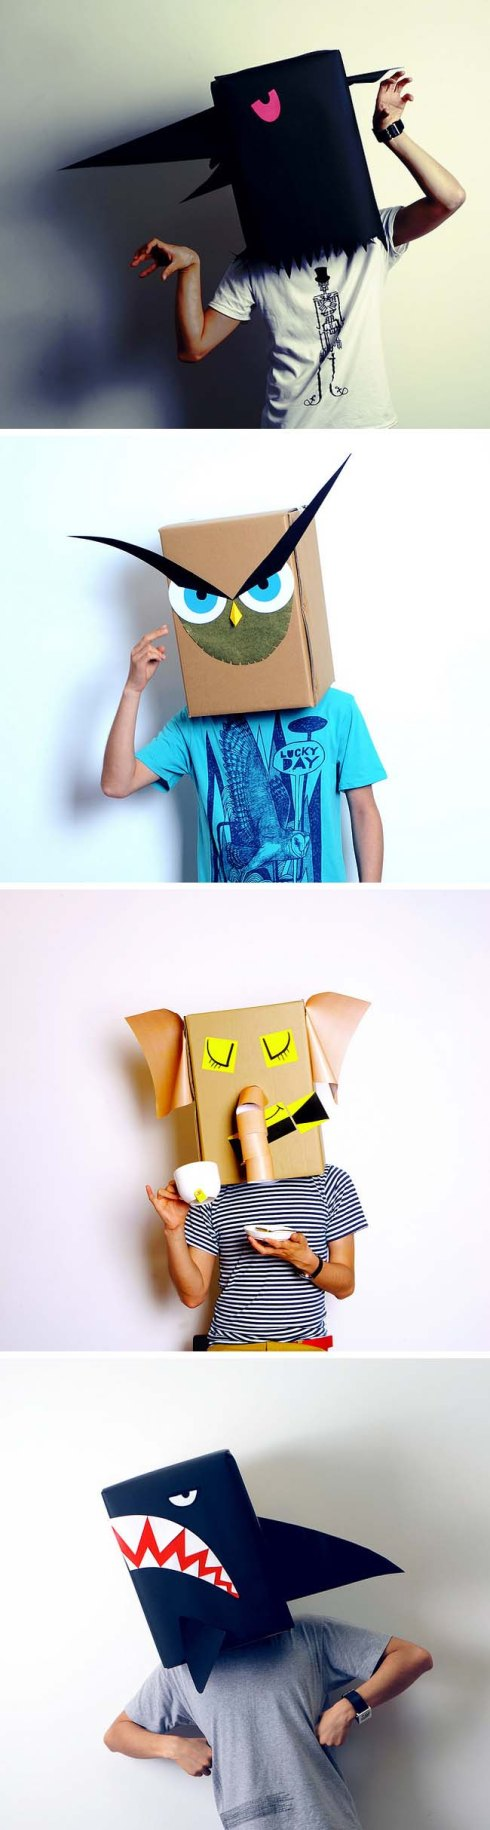 Linus Hui, Linus and the Feel Good Factory, Carton Animals, Costumes made from Paper